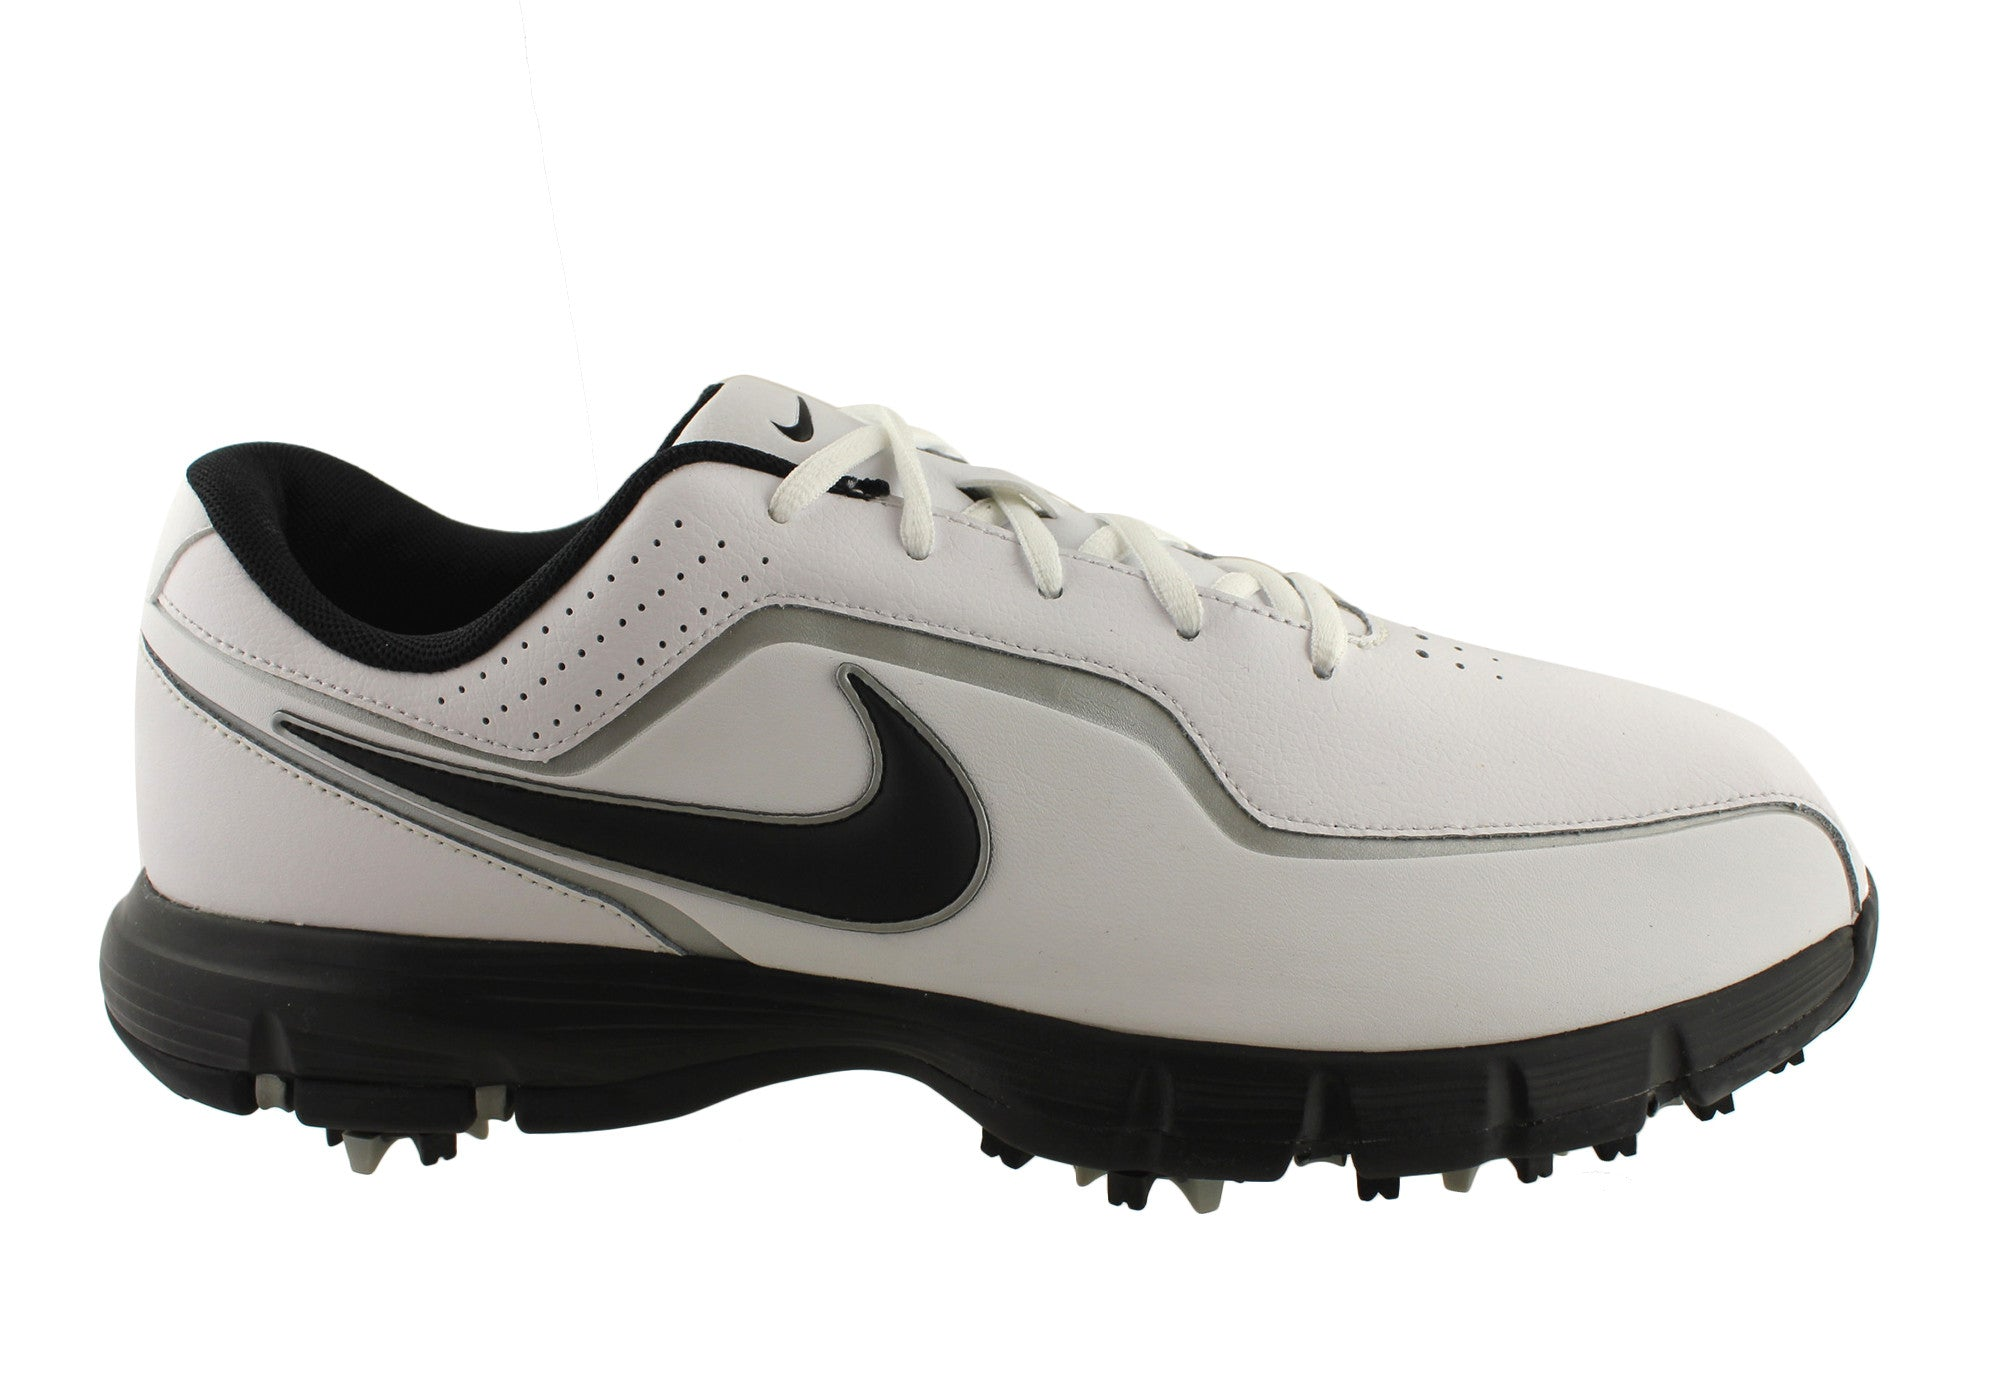 49446fd66599 Nike Durasport II Mens Golf Shoes